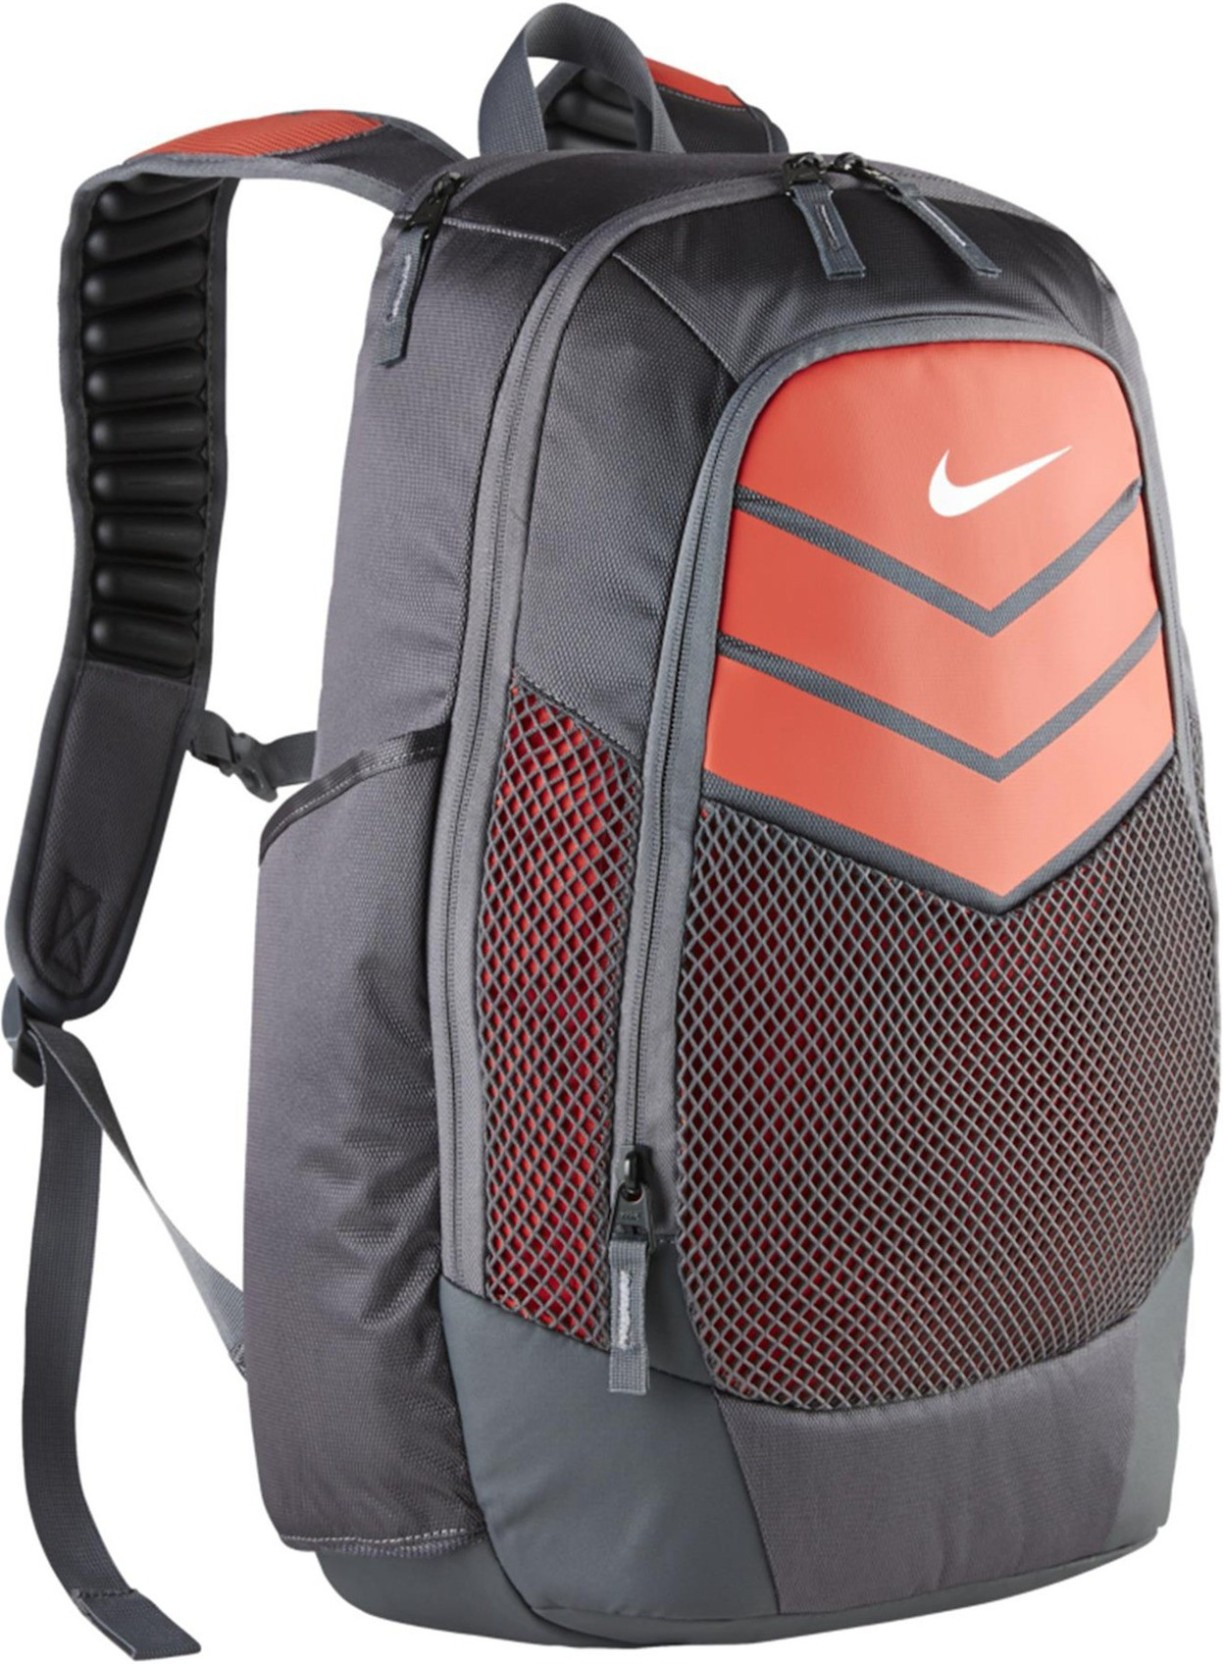 6bdf05d420d5 Nike Vapor Power Backpack Waterproof- Fenix Toulouse Handball